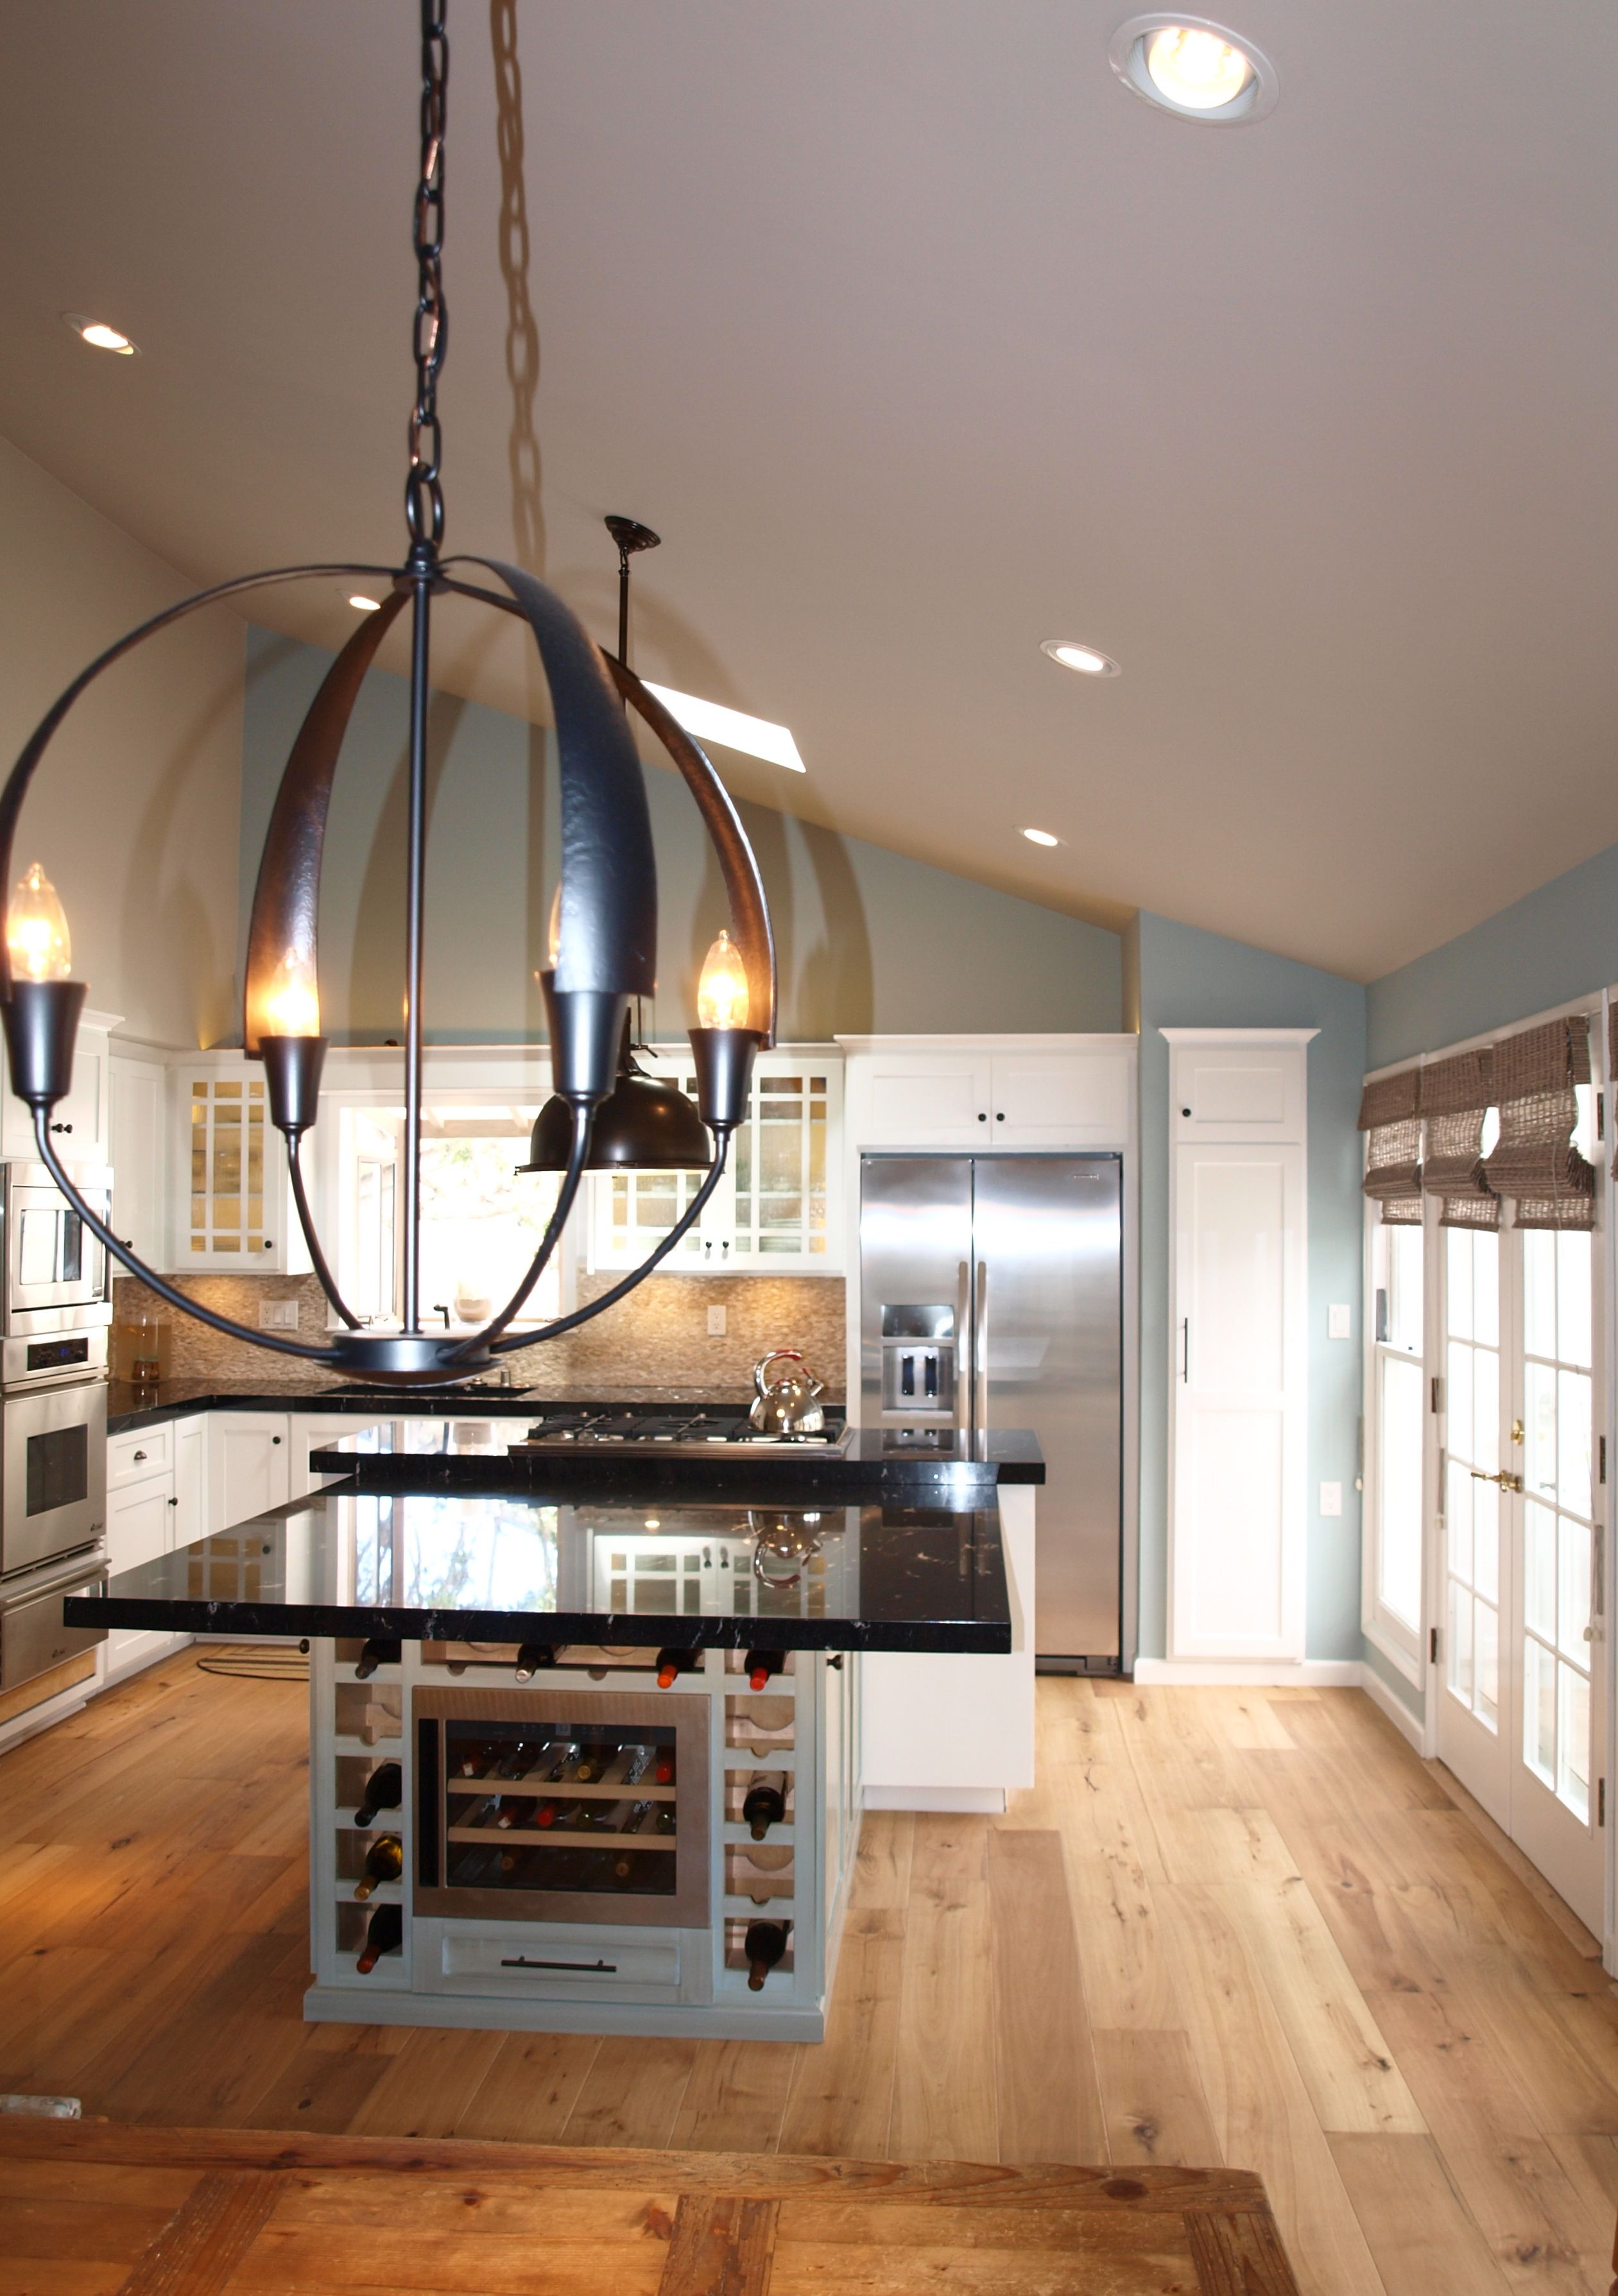 View Of The New Cirque Lantern Dining Light By Hubbarton Forge And A Freshly Remodeled Black Blue And White Ki Dining Lighting Rustic House Beautiful Kitchens